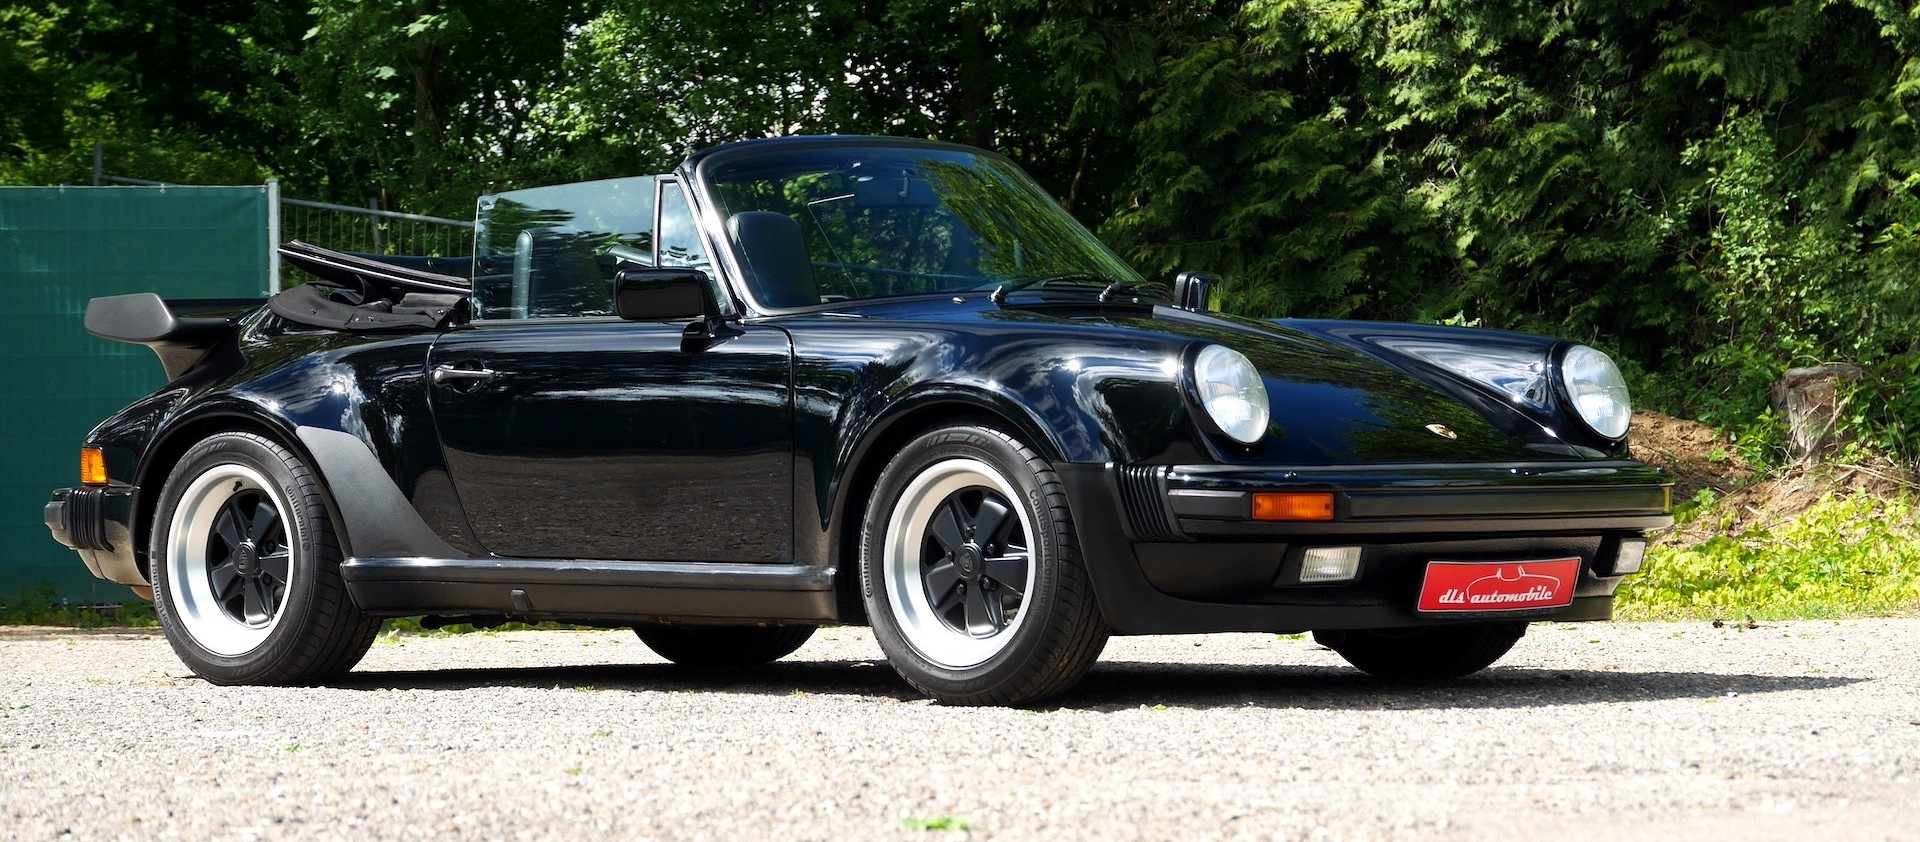 This 1989 Porsche 930 Turbo Convertible Is a Rare Widowmaker